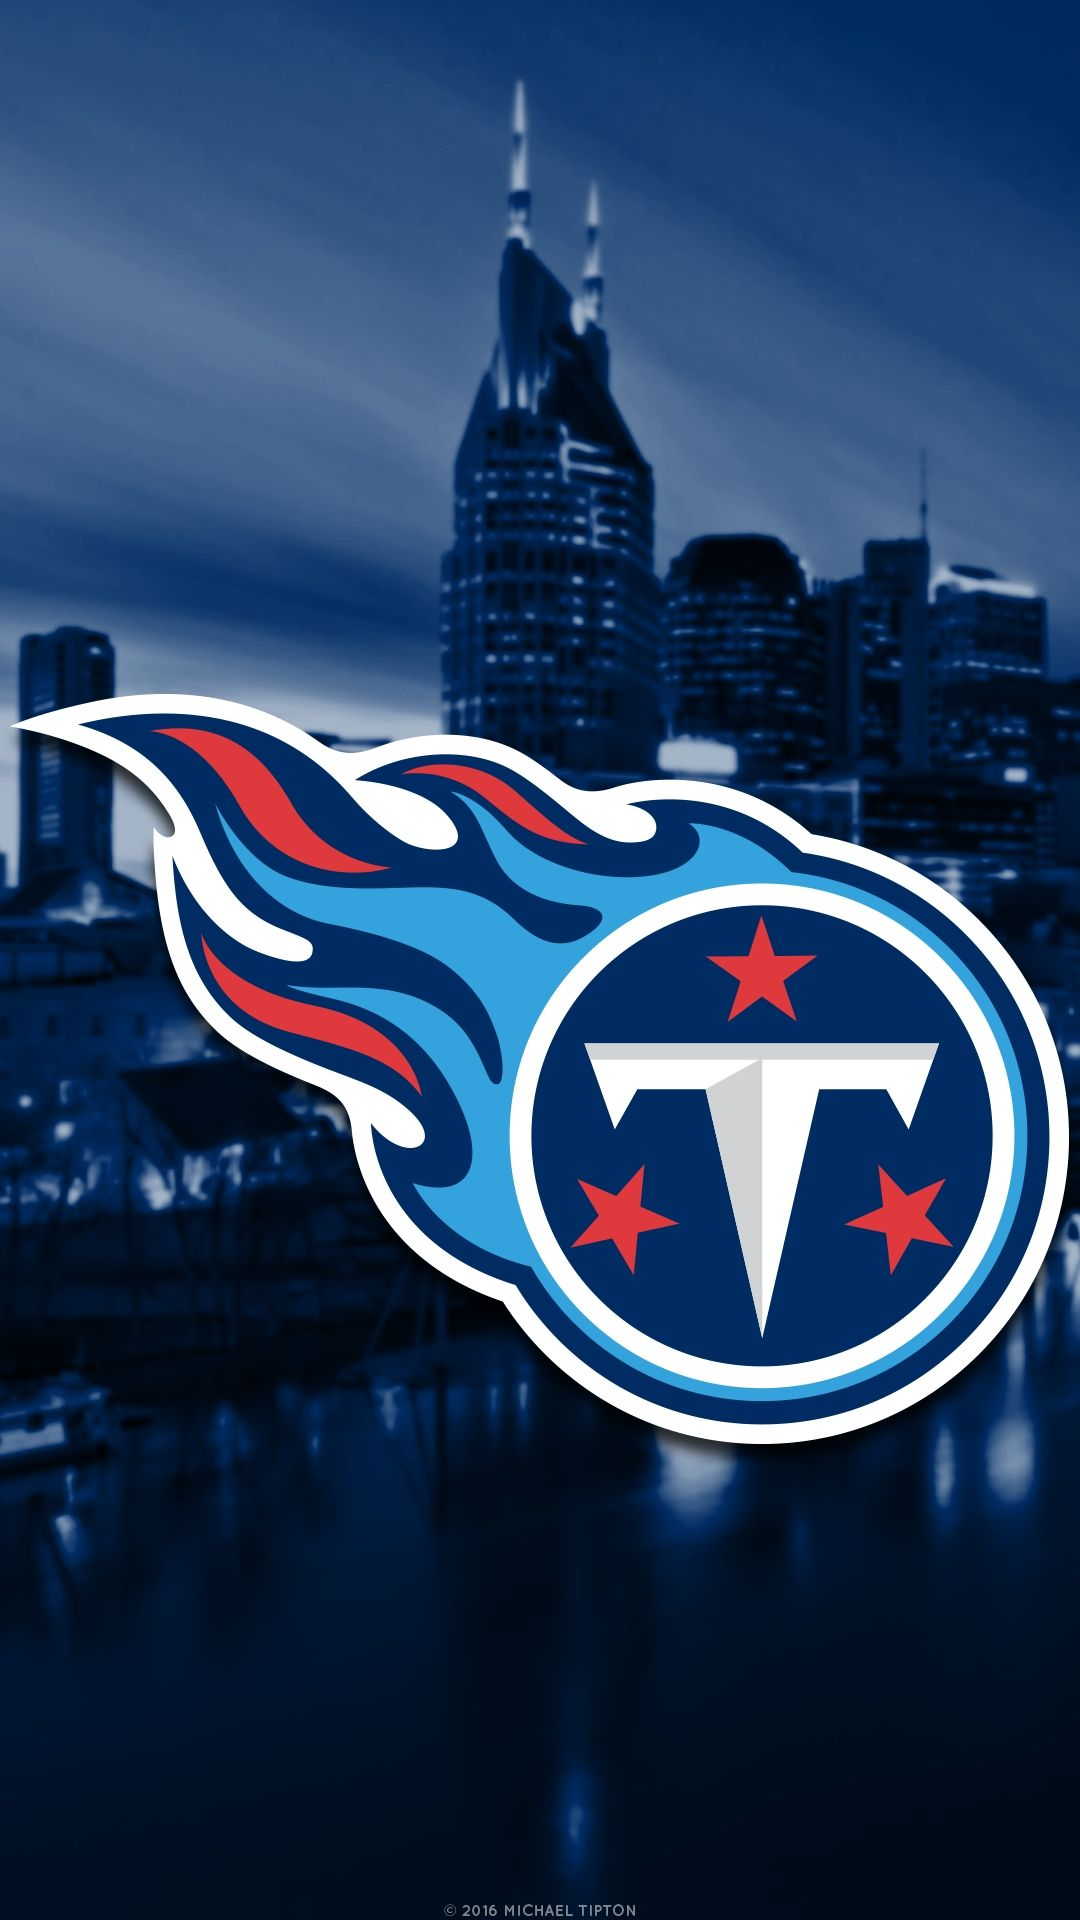 Tn Titans Iphone Wallpapers Top Free Tn Titans Iphone Backgrounds Wallpaperaccess